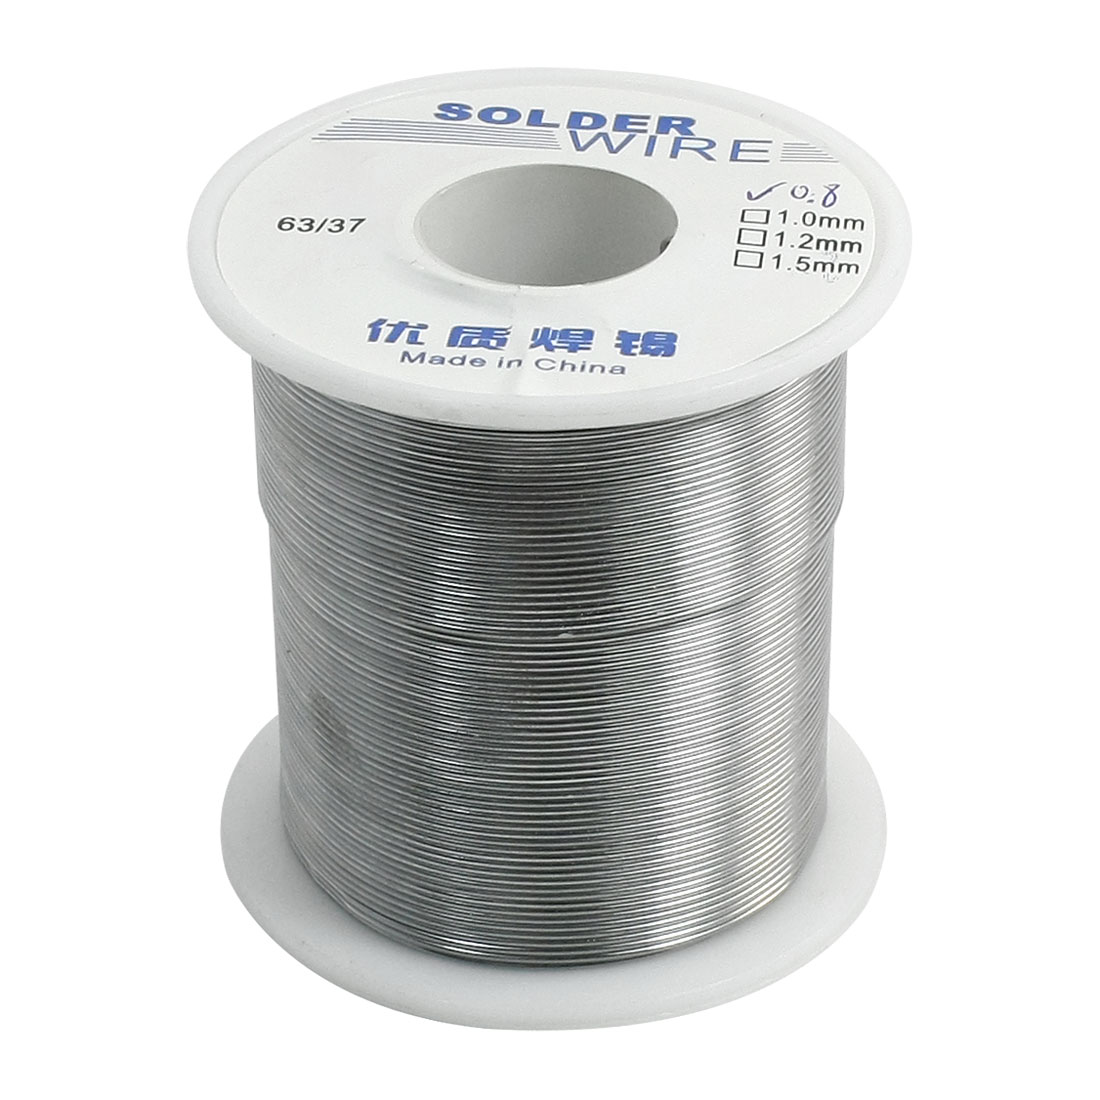 "0.8mm 0.031"" 63/37 Tin Lead Alloy Rosin Cored Soldering Solder Wire Spool"